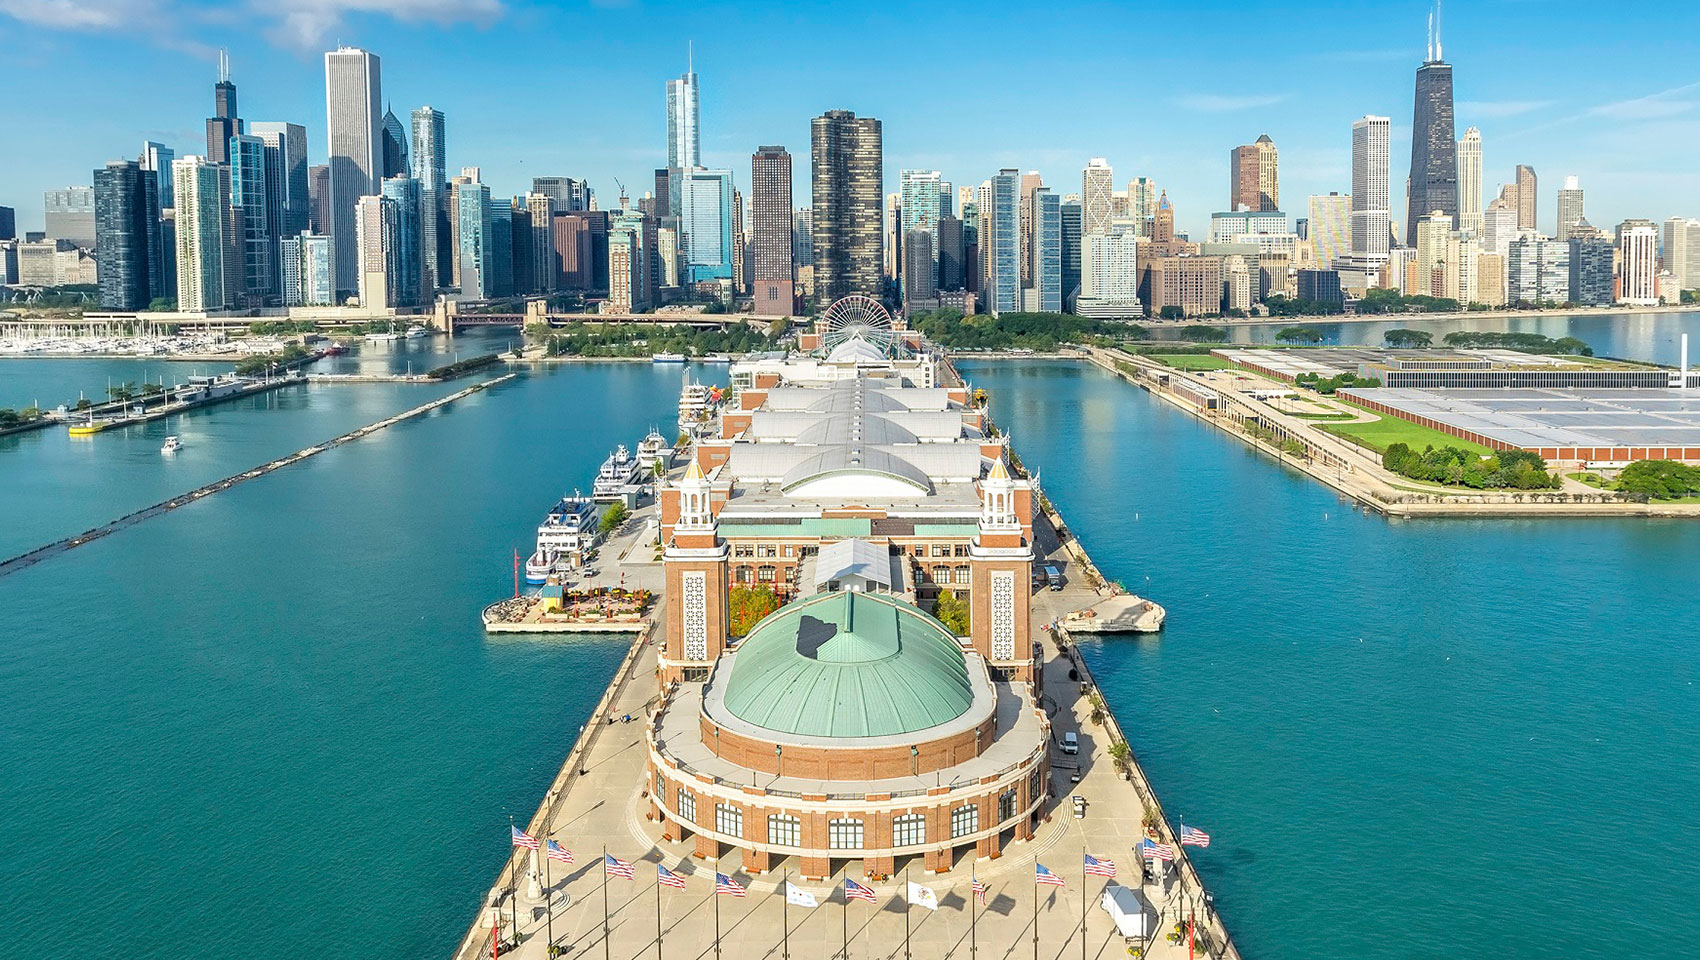 Limo Service to Navy Pier, Transportation Service to Navy Pier, Car Service to Navy Pier, Limousine Service to Navy Pier, Sedan Service to Navy Pier, SUV Service to Navy Pier